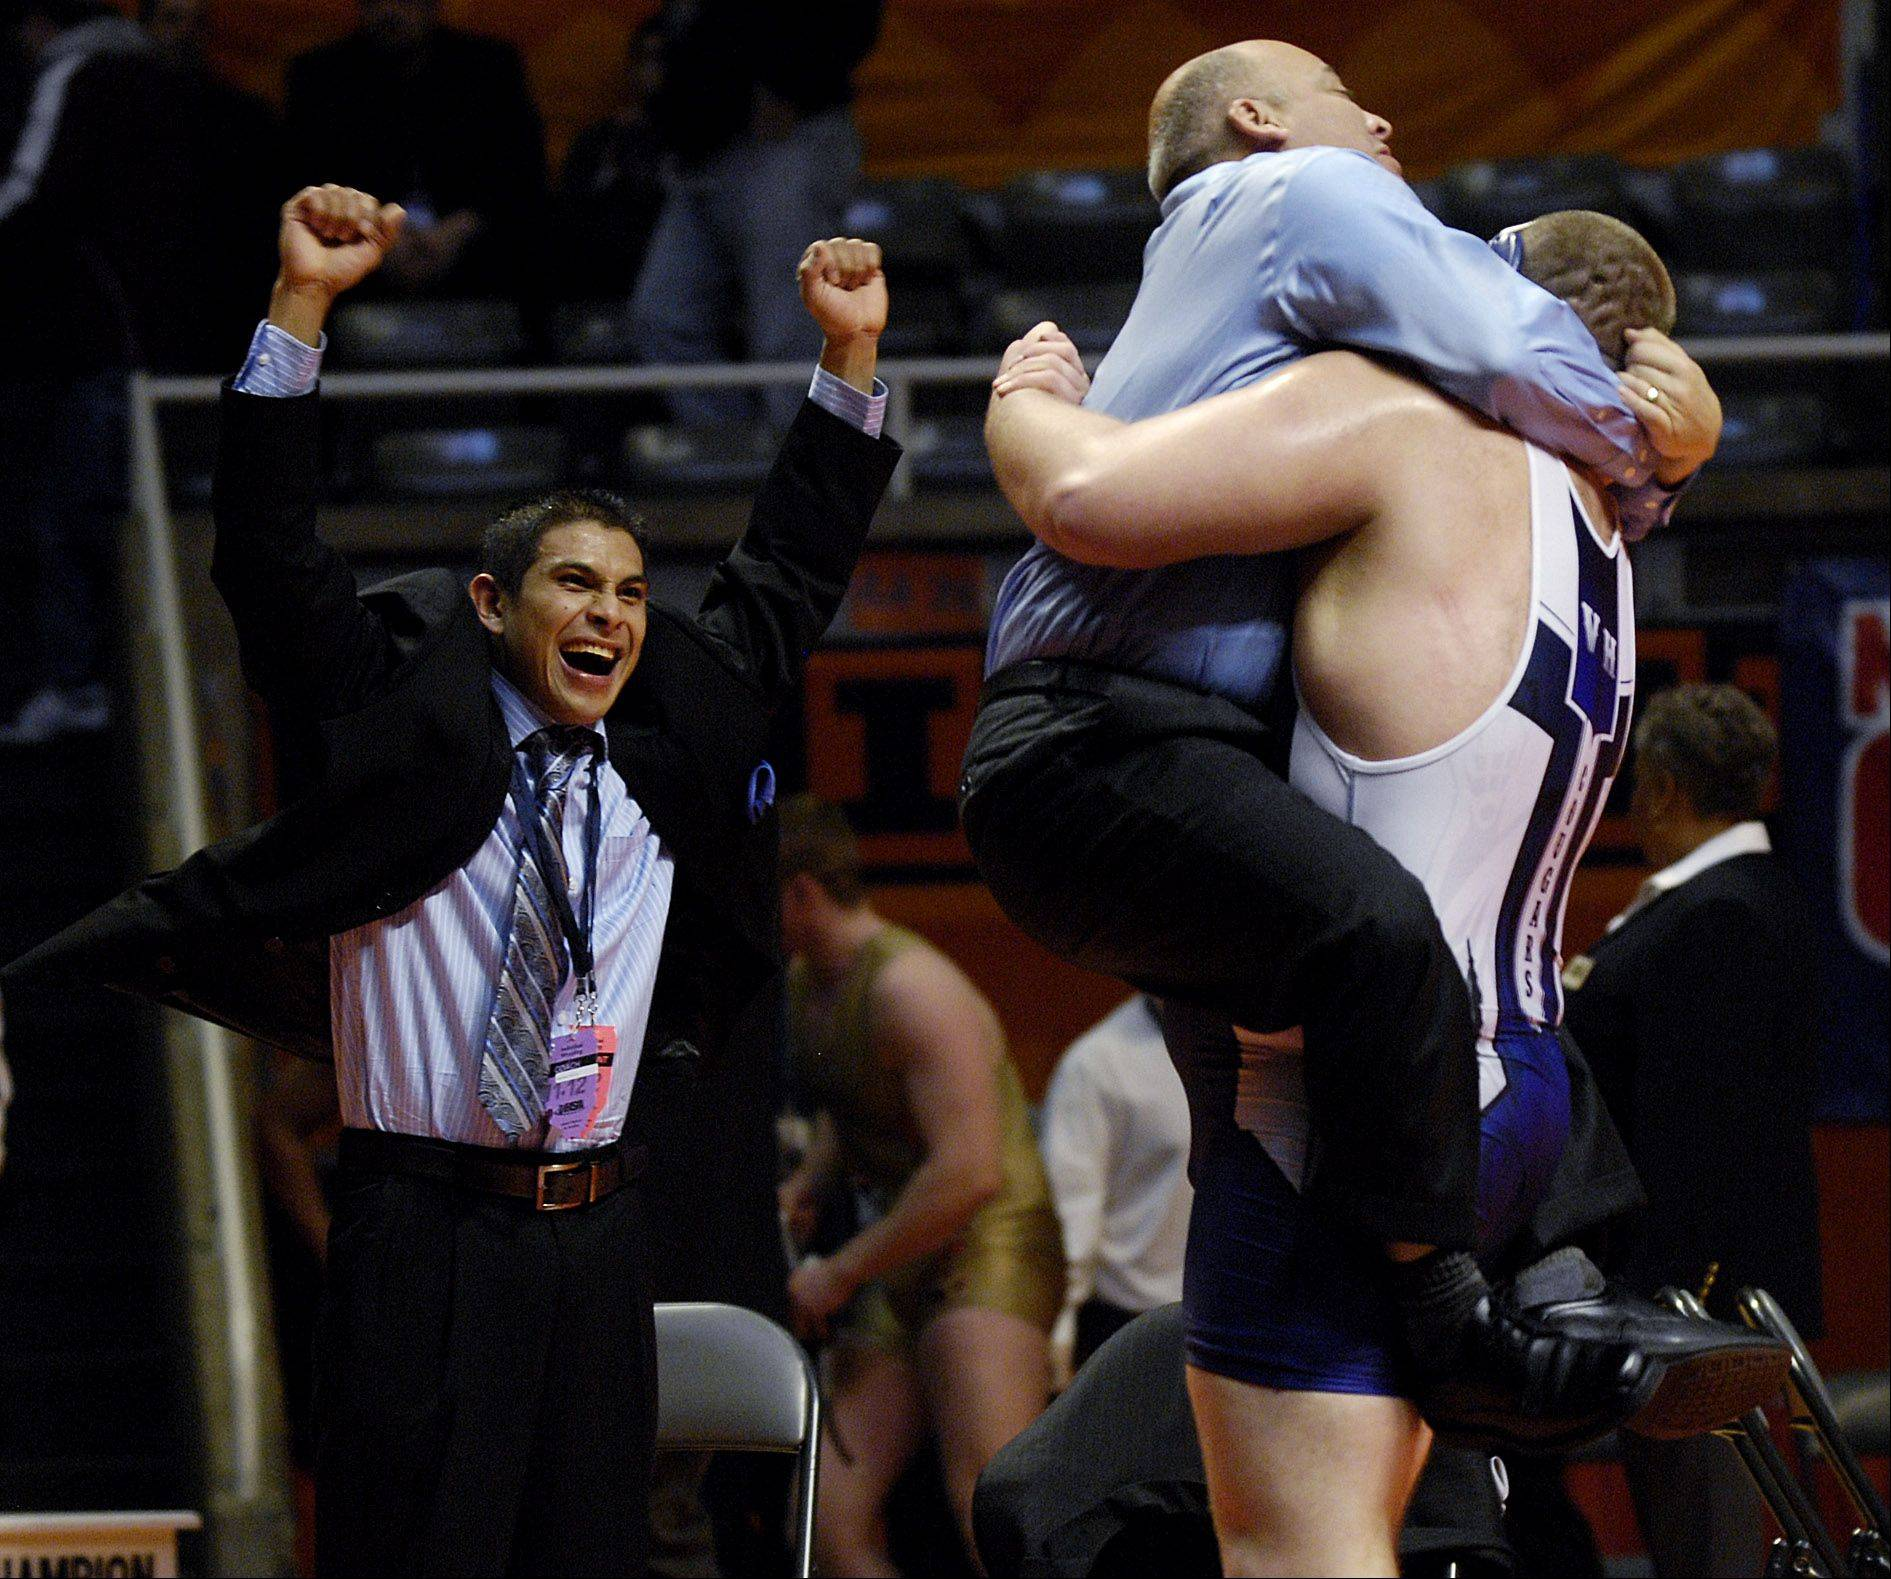 Jeremy Brazil of Vernon Hills celebrates his win in the 2A 285-pound Championship match against Seth Gonzalez of Yorkville during the 2012 IHSA wrestling state finals in Champaign Saturday.